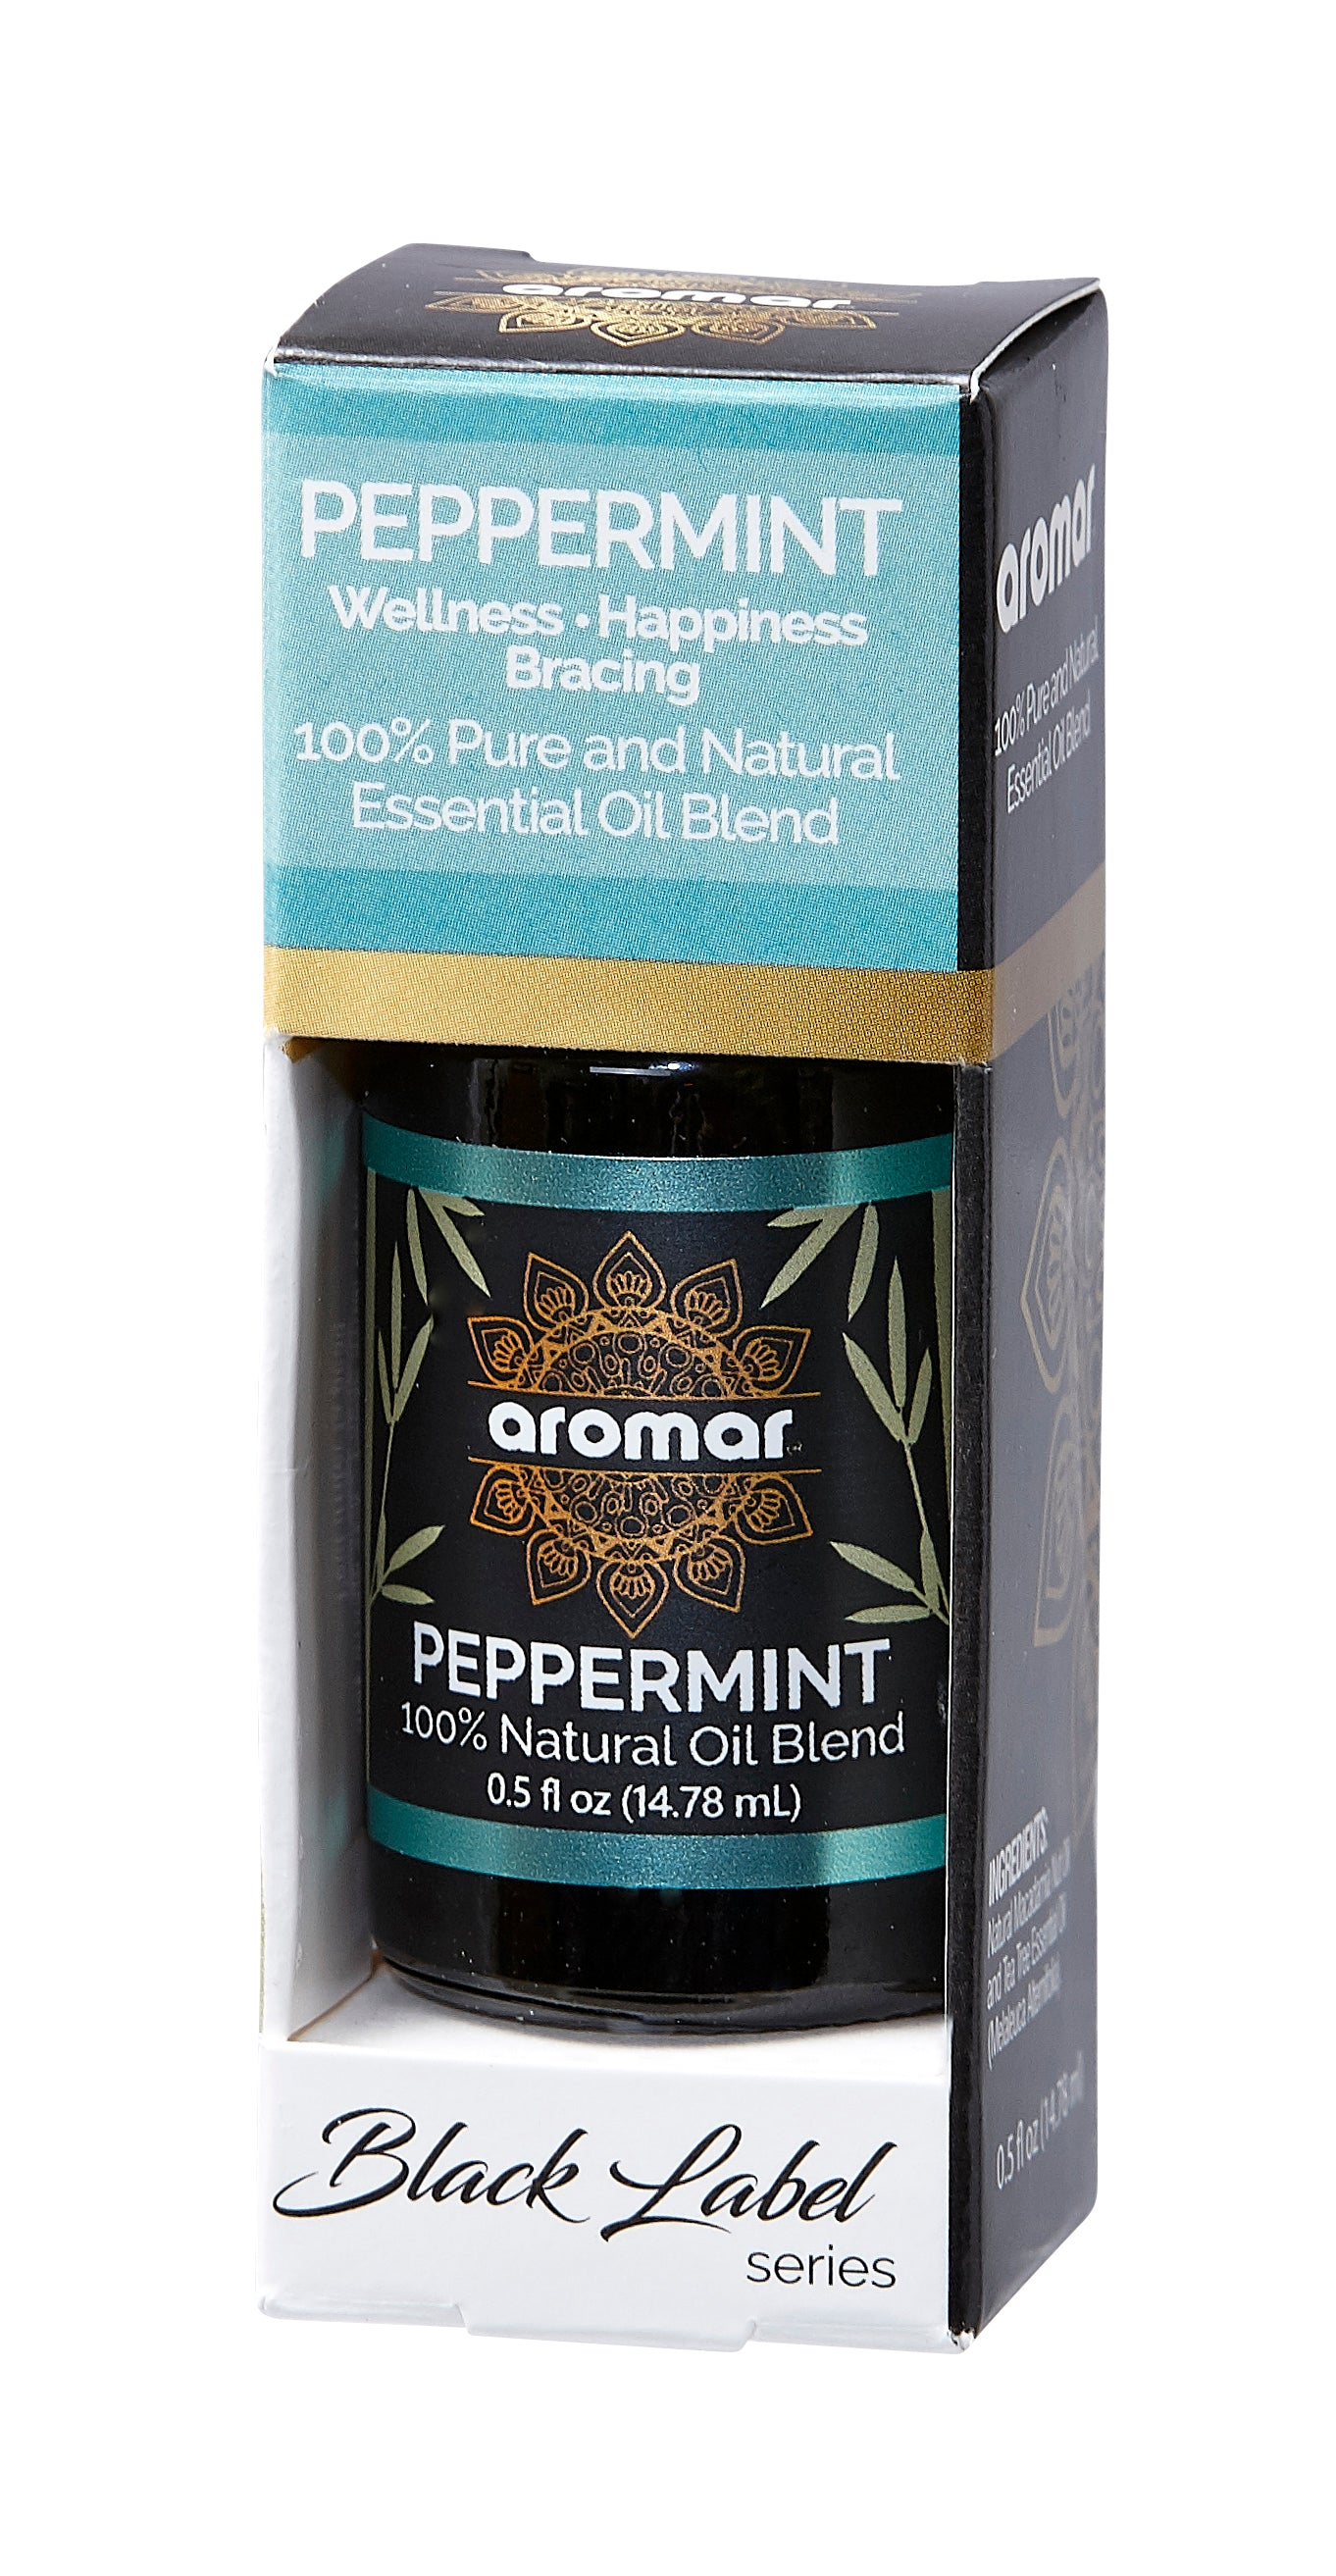 PEPPERMINT BLACK SERIES ESSENTIALS 0.5 OZ. BOX